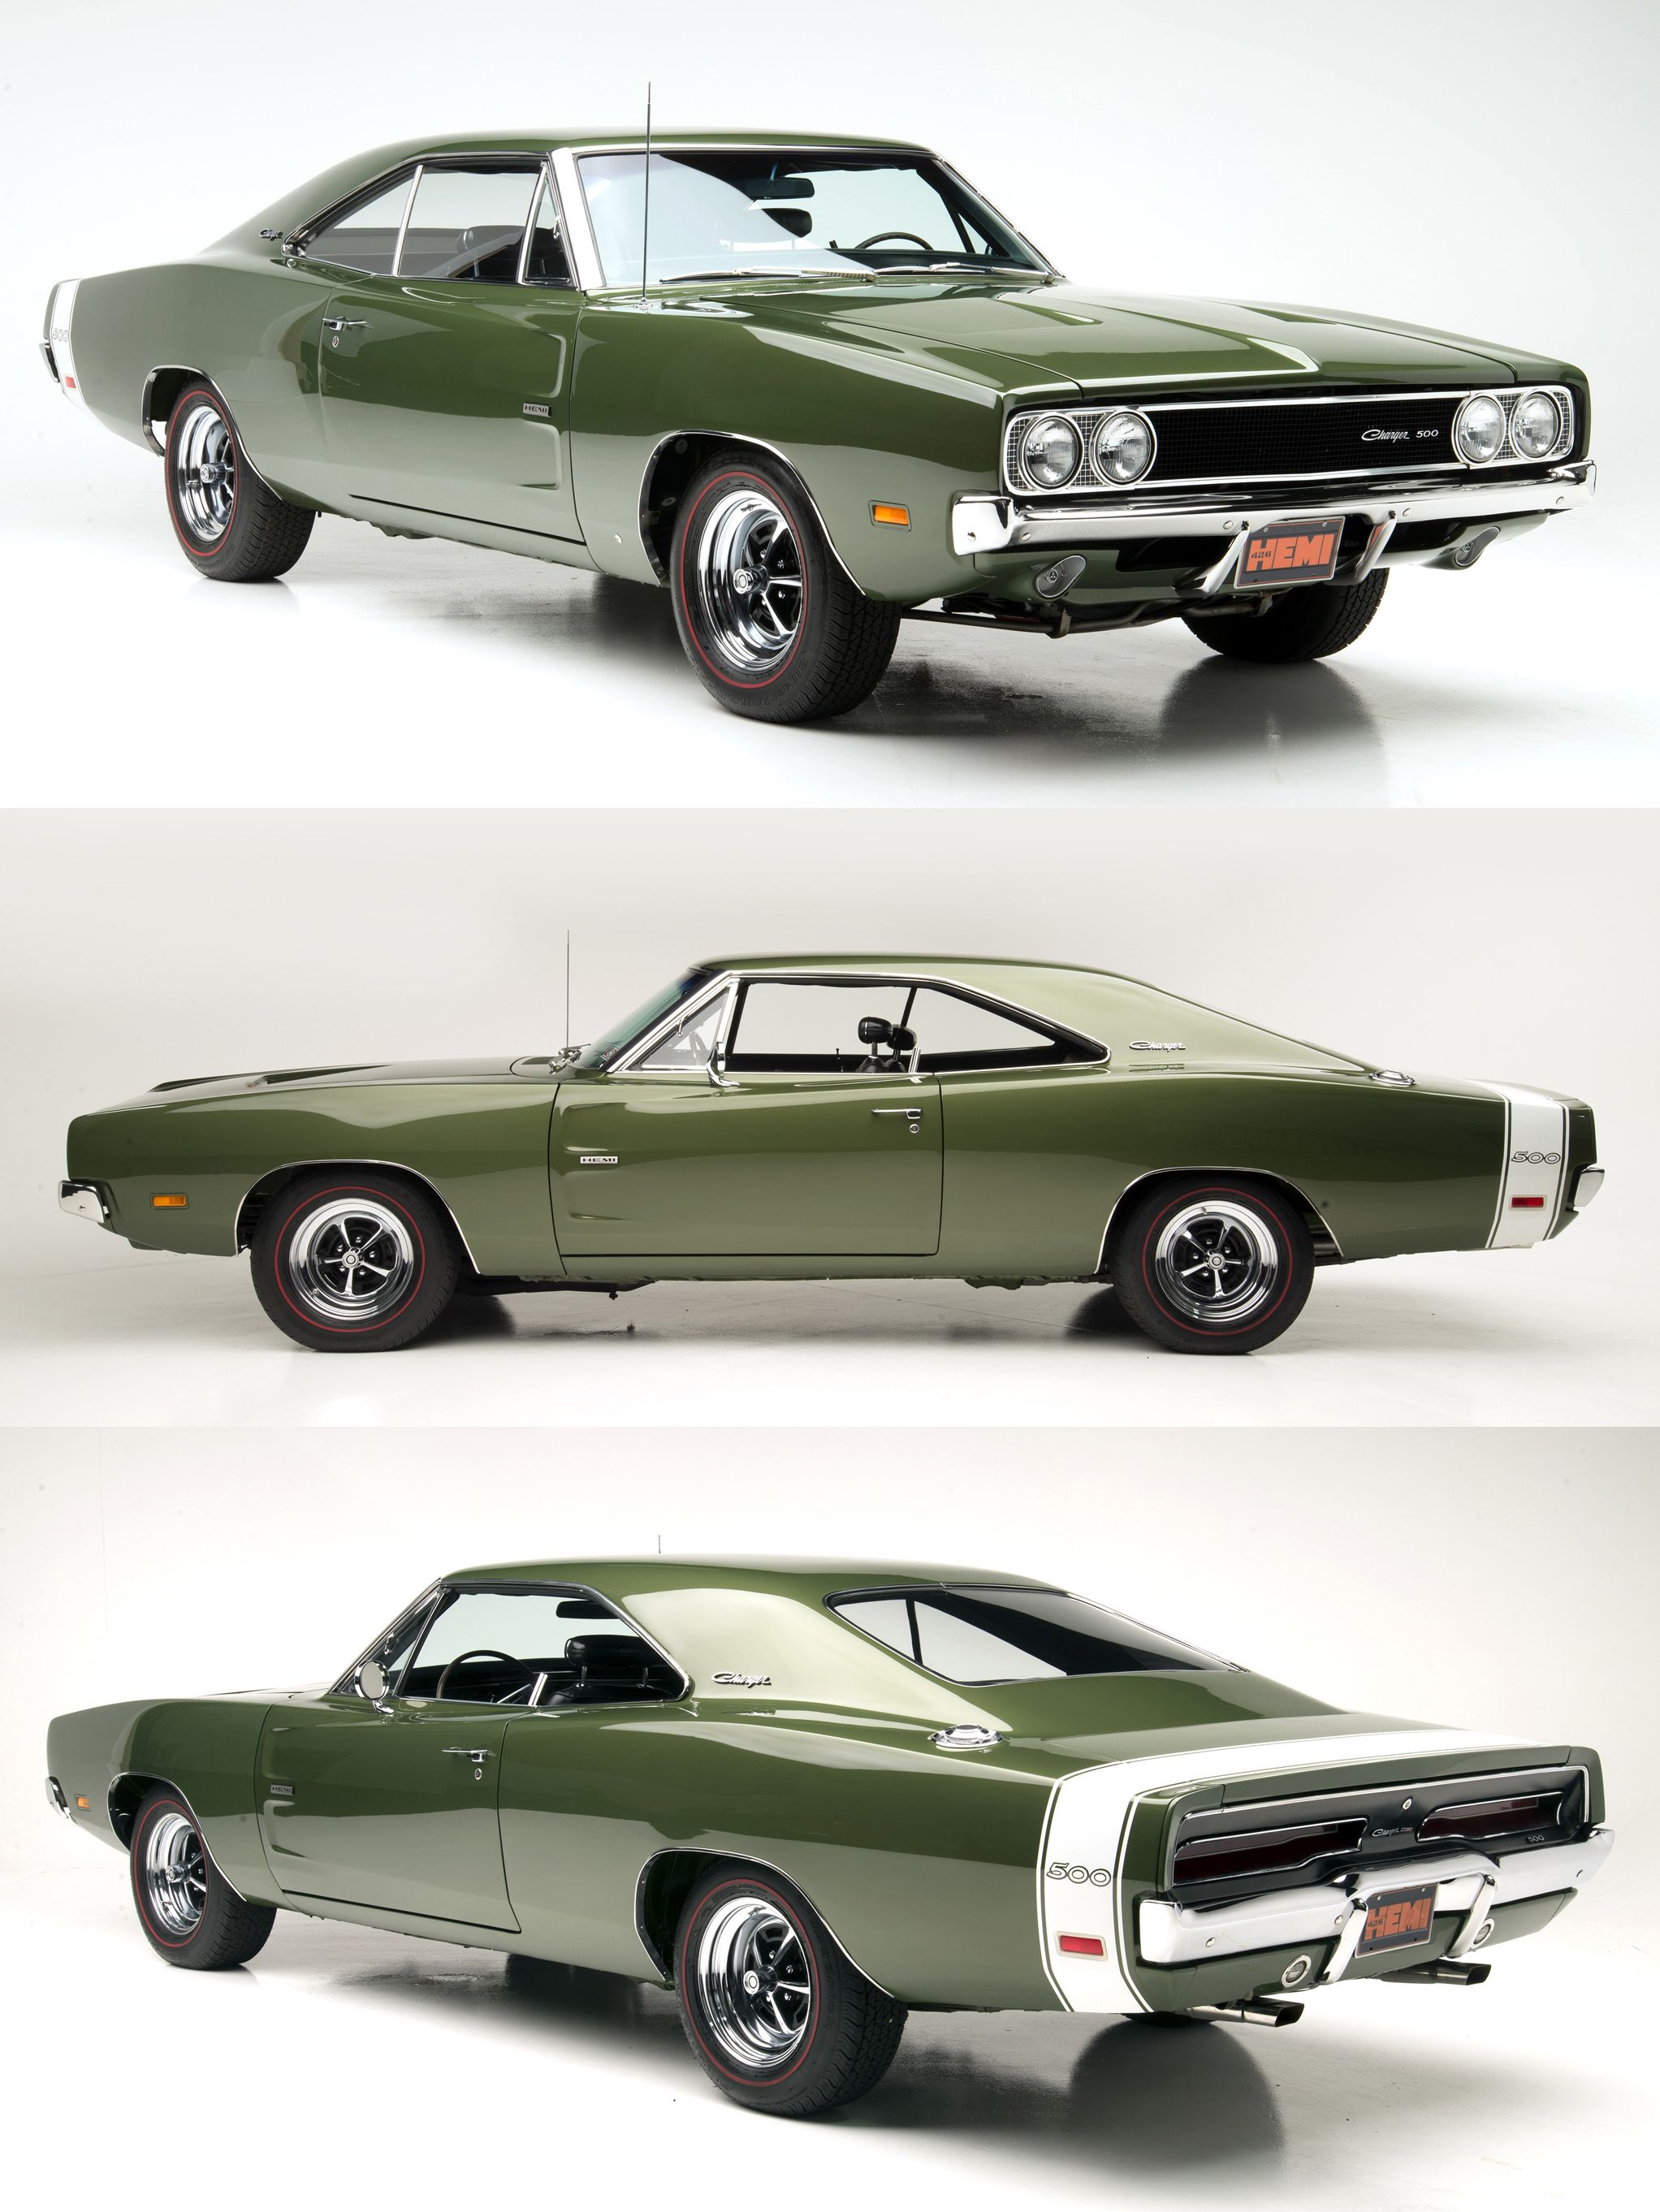 1969 dodge charger 500 hemi refurb muscle cars pinterest spielzeug oldtimer und kaufen. Black Bedroom Furniture Sets. Home Design Ideas